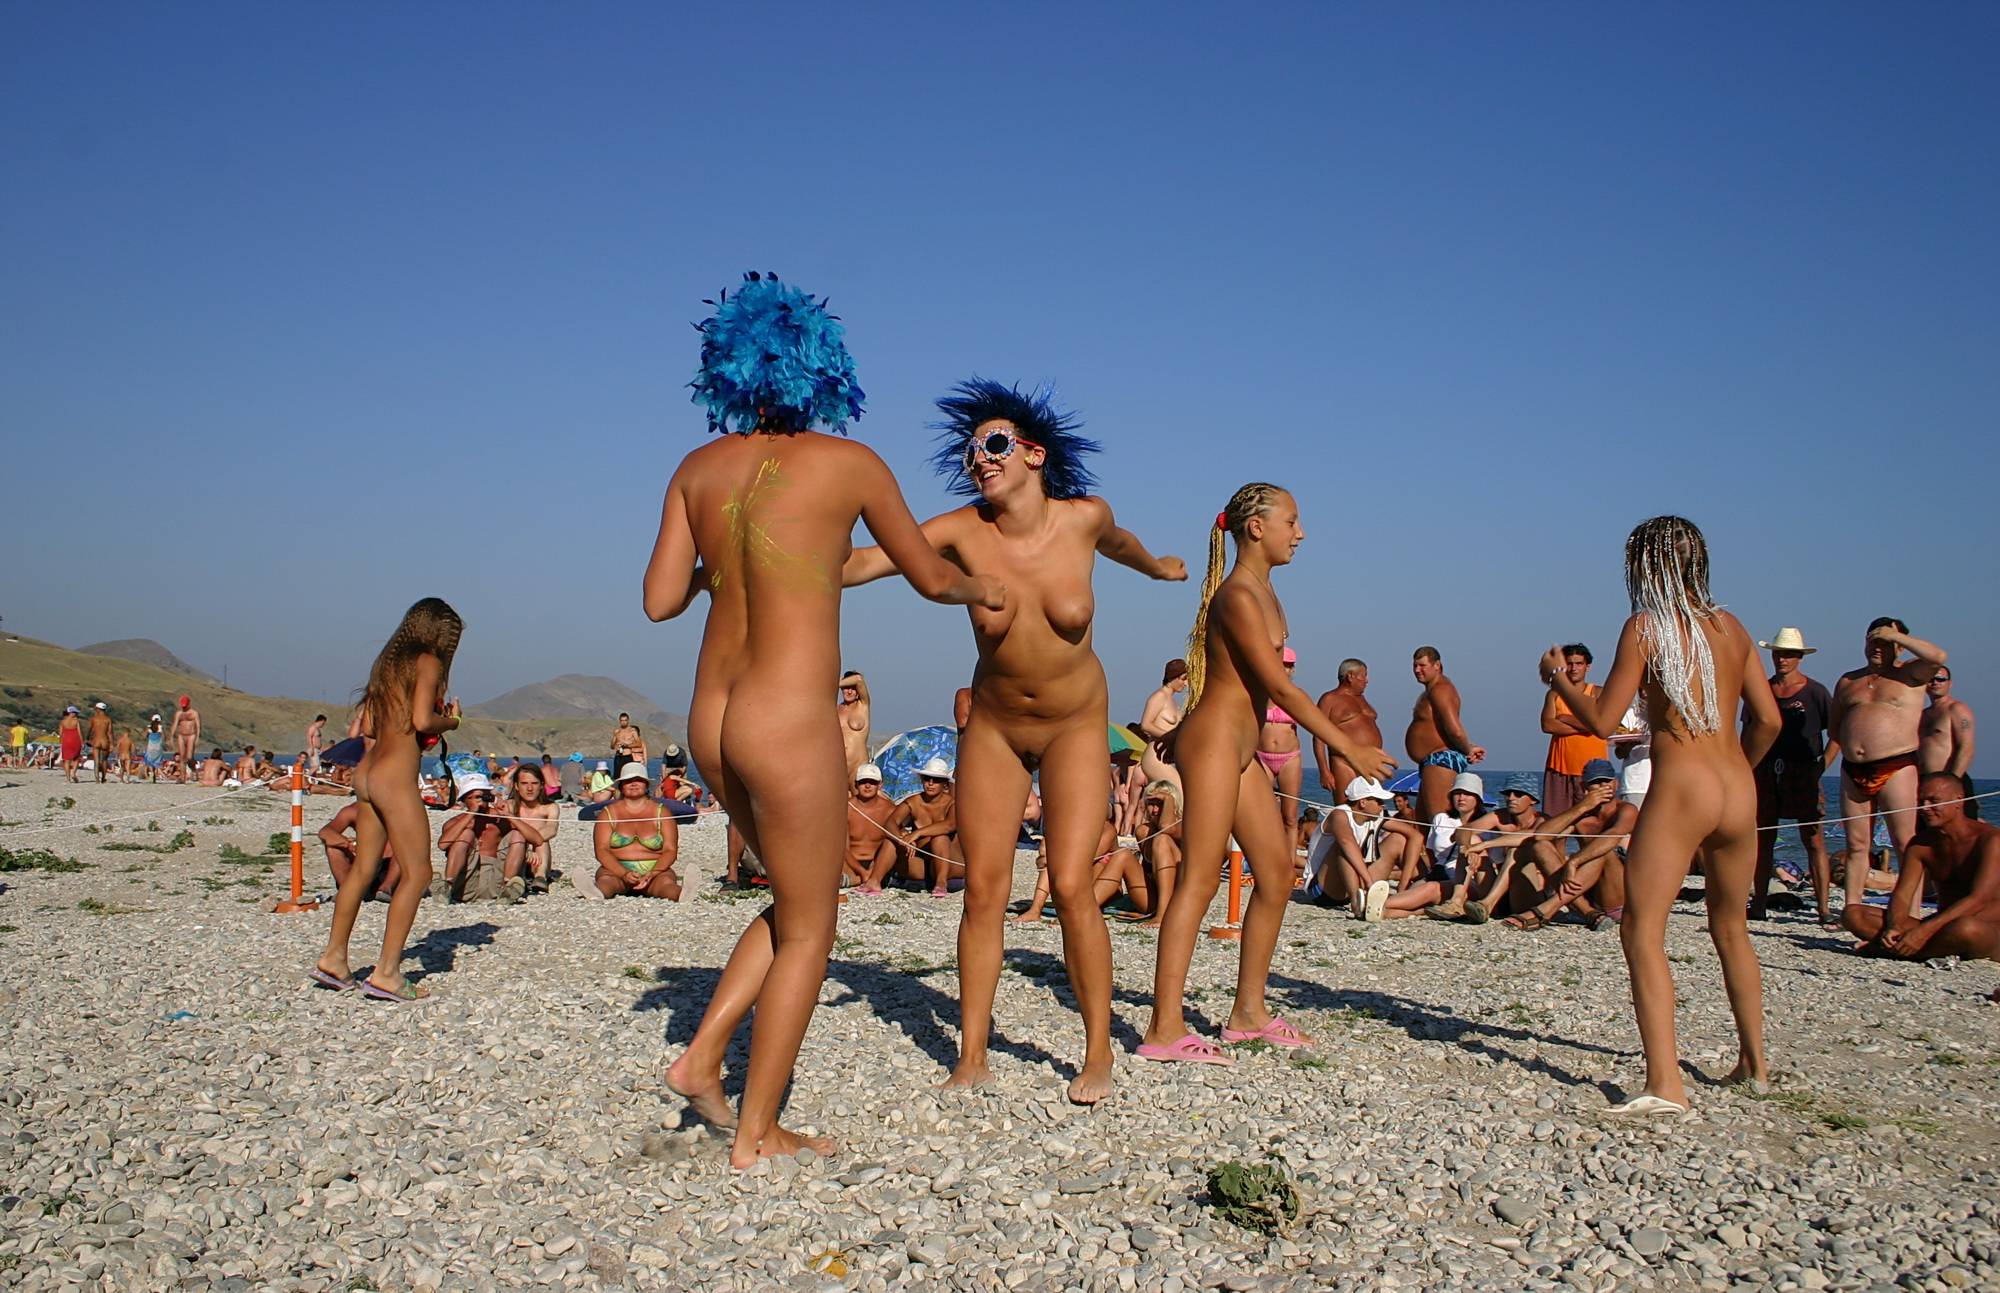 Pure Nudism Photos Blue Haired Sand Dance - 1